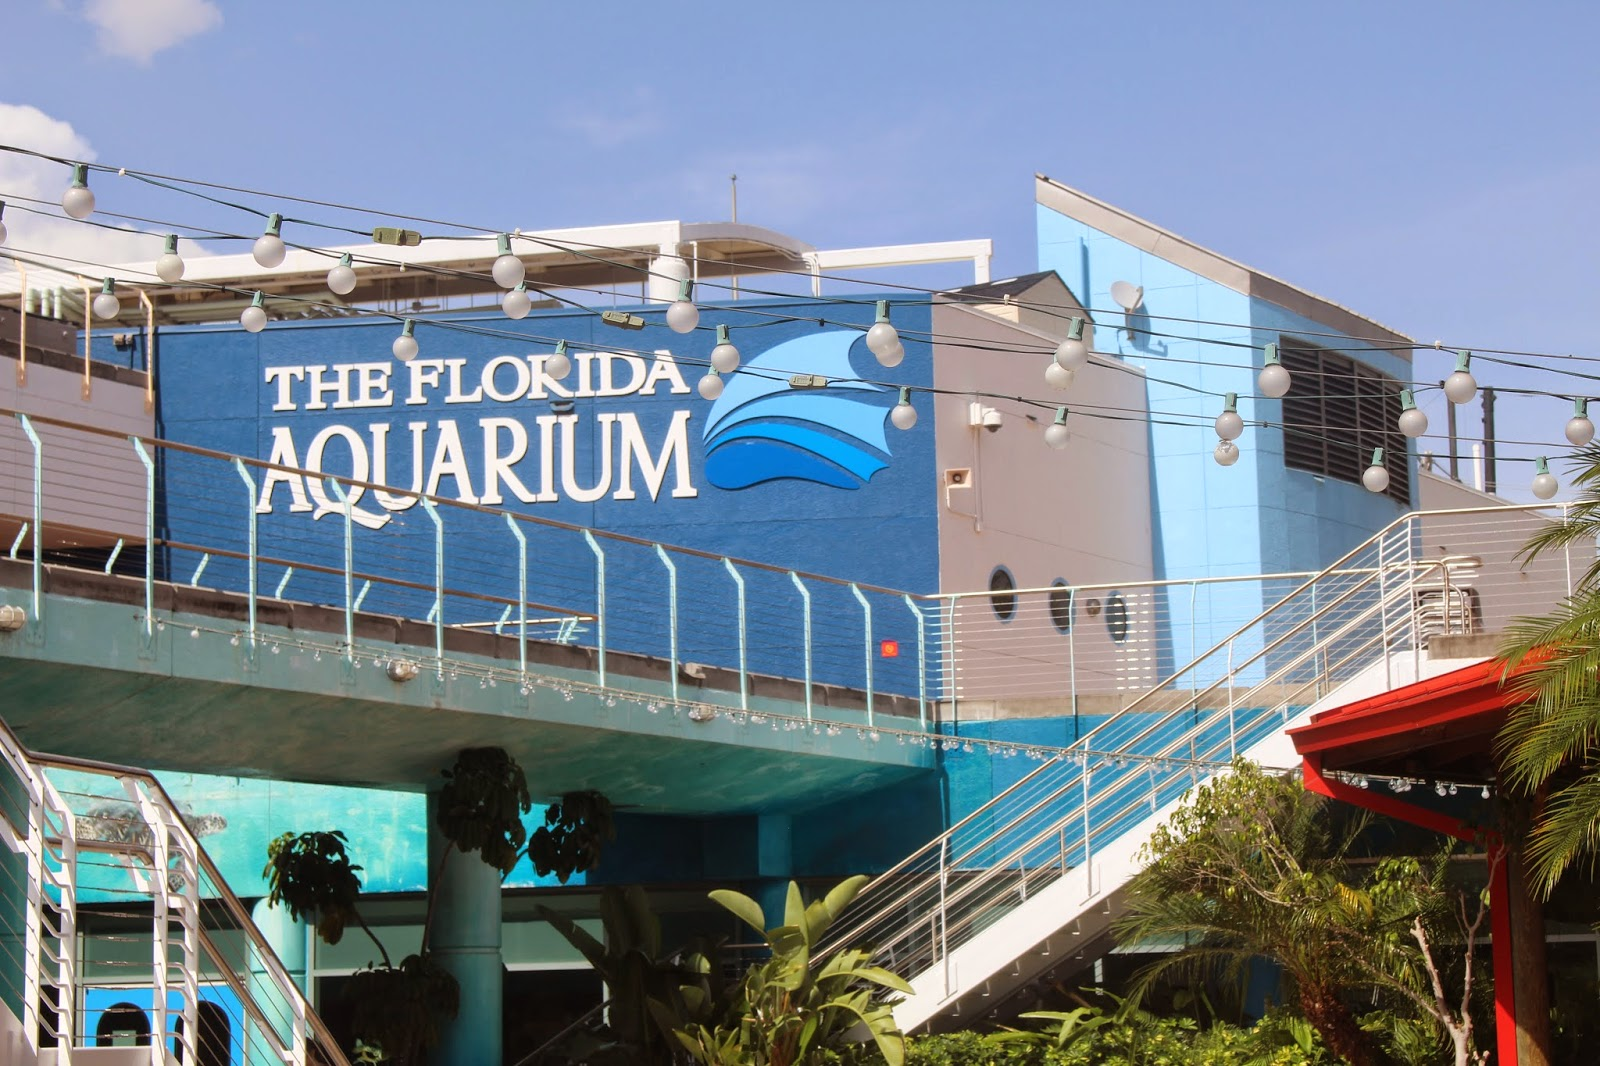 Discounts average $9 off with a The Florida Aquarium promo code or coupon. 30 The Florida Aquarium coupons now on RetailMeNot.